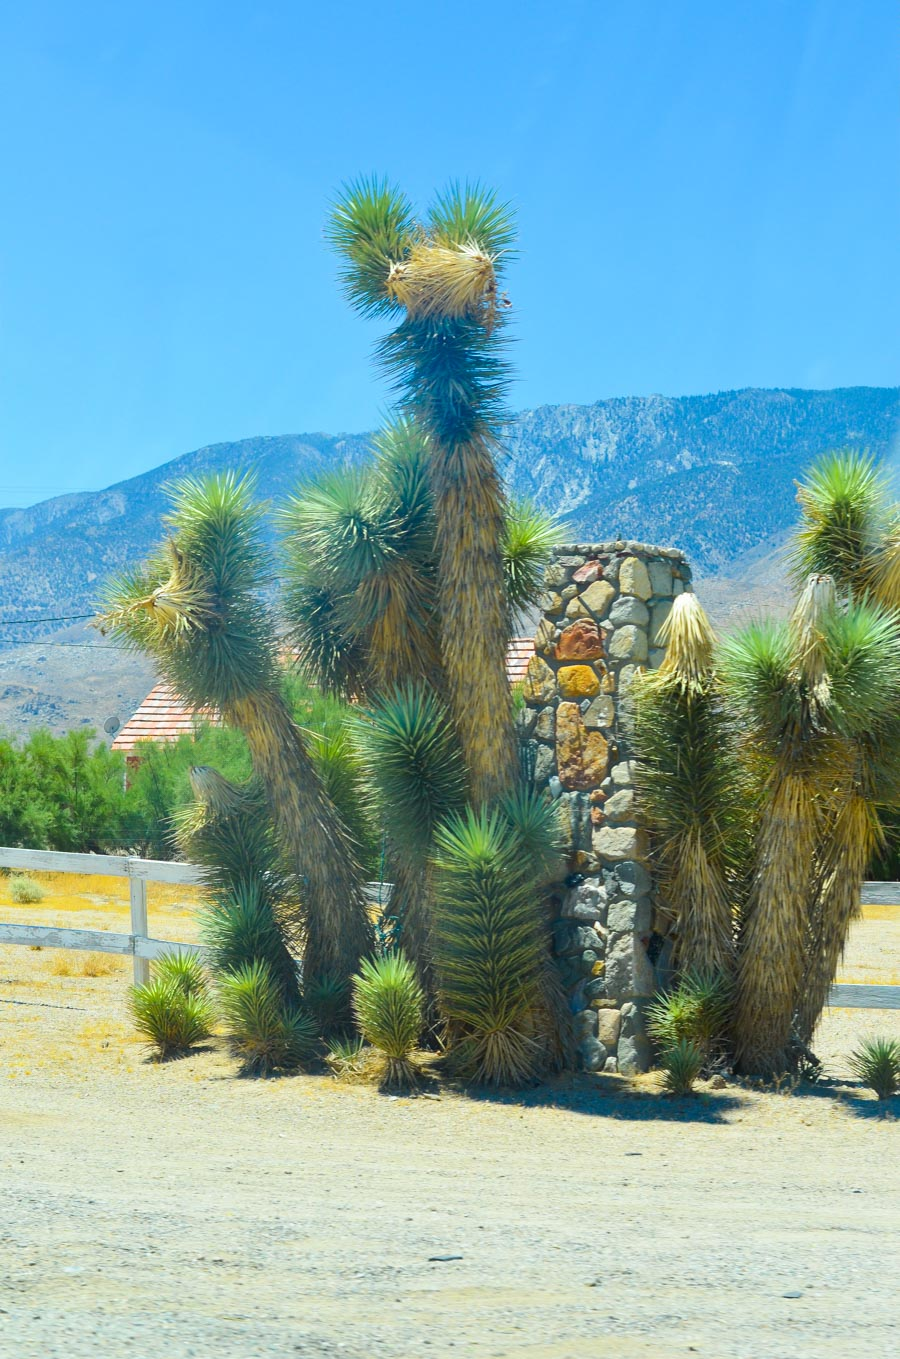 Highway 395 Photos Diary Mono Lake, California to InyoKern + Indian Wells| Luci's Morsels :: California Travel Blogger